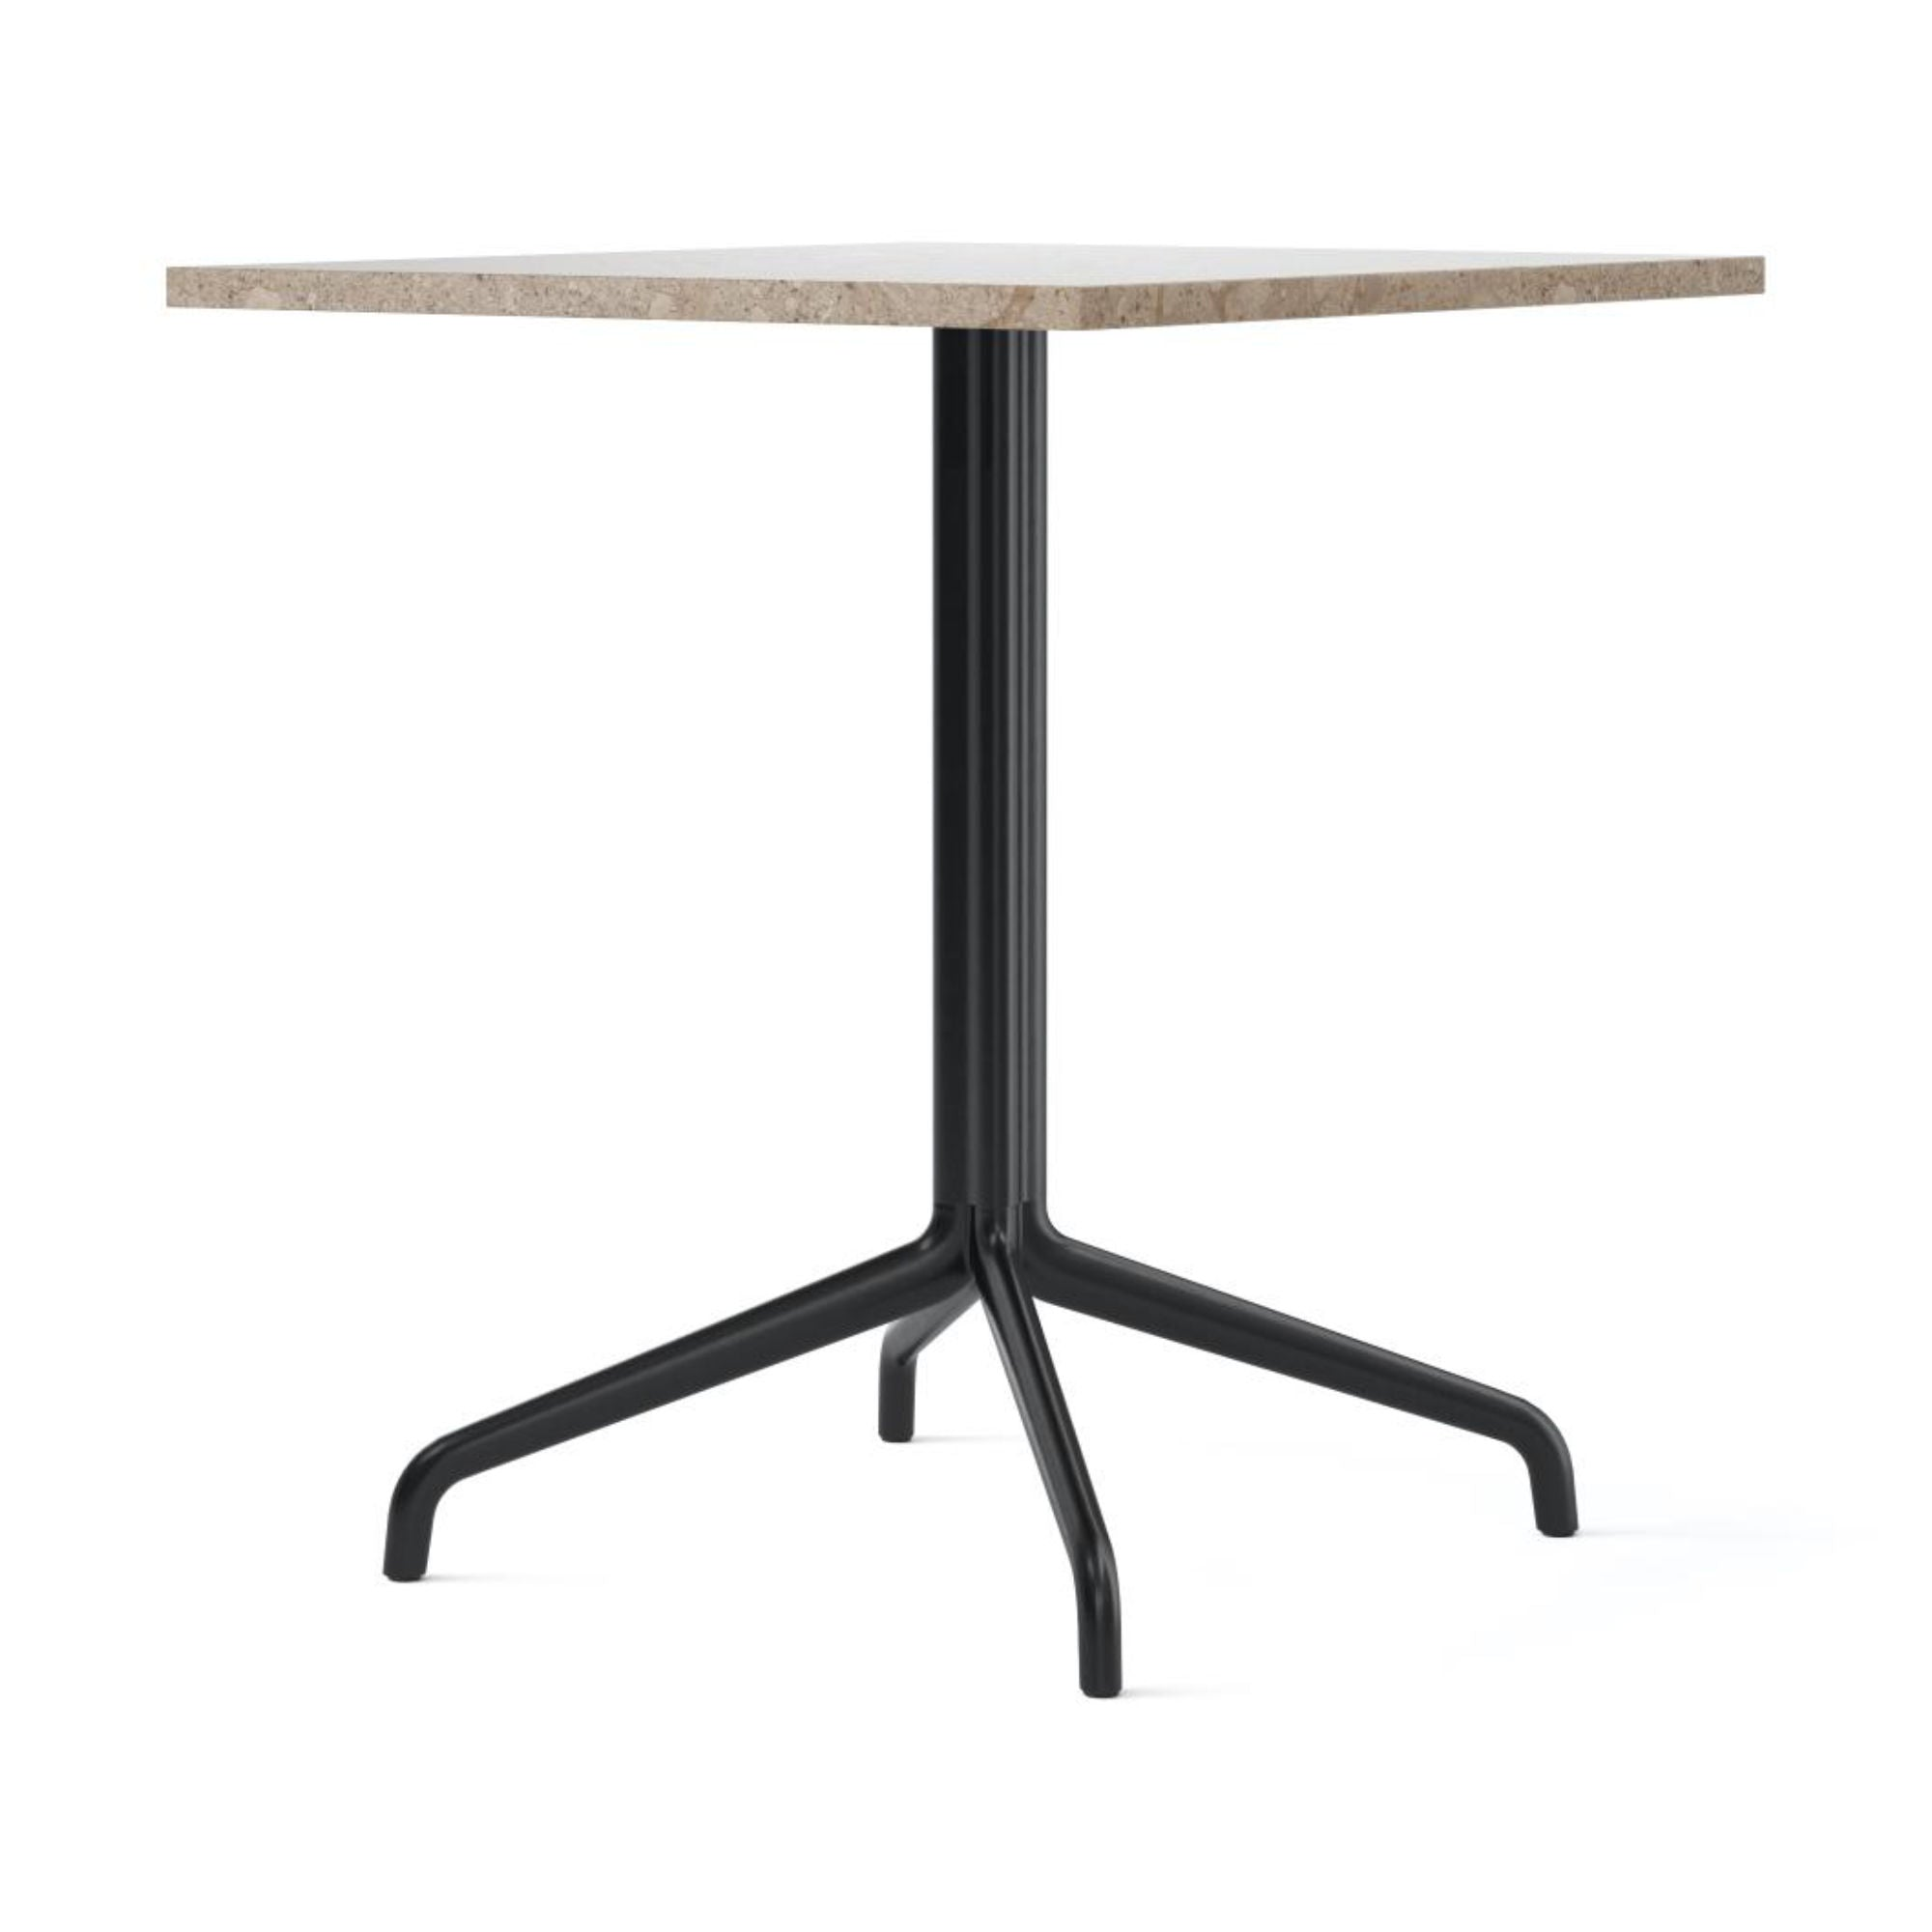 Menu Harbour Column Dining Table Star Base 70x60cm , Black Steel-Kunis Breccia Stone